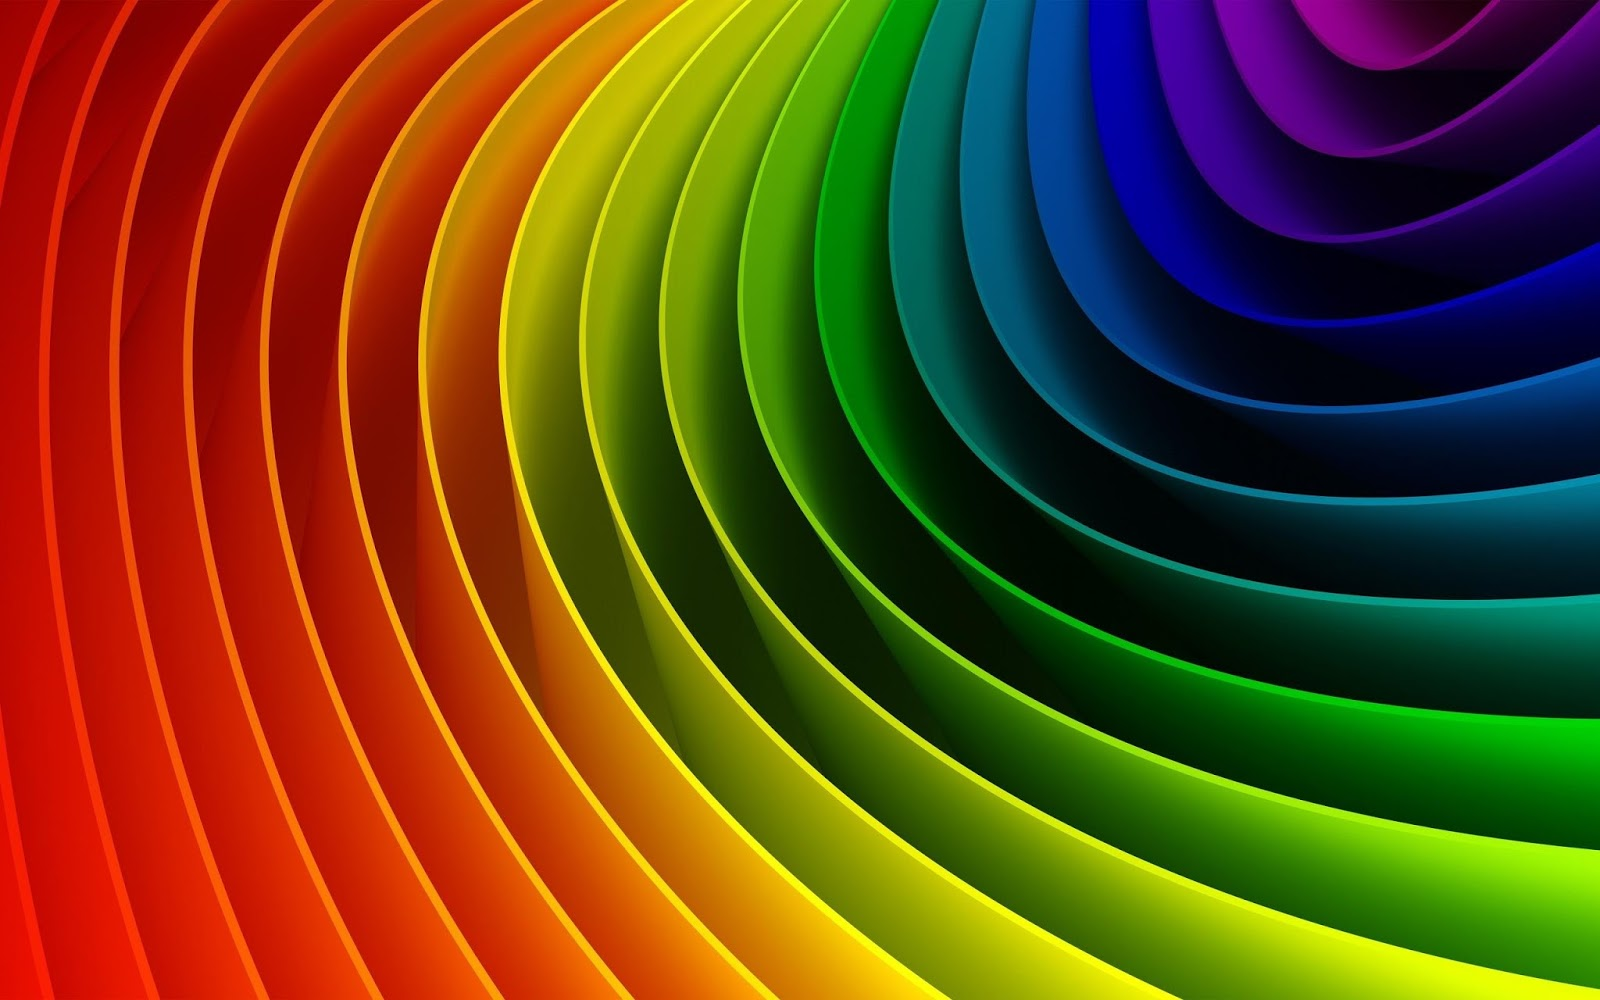 Amazing Colorful Wallpapers | Wallpaper Albums